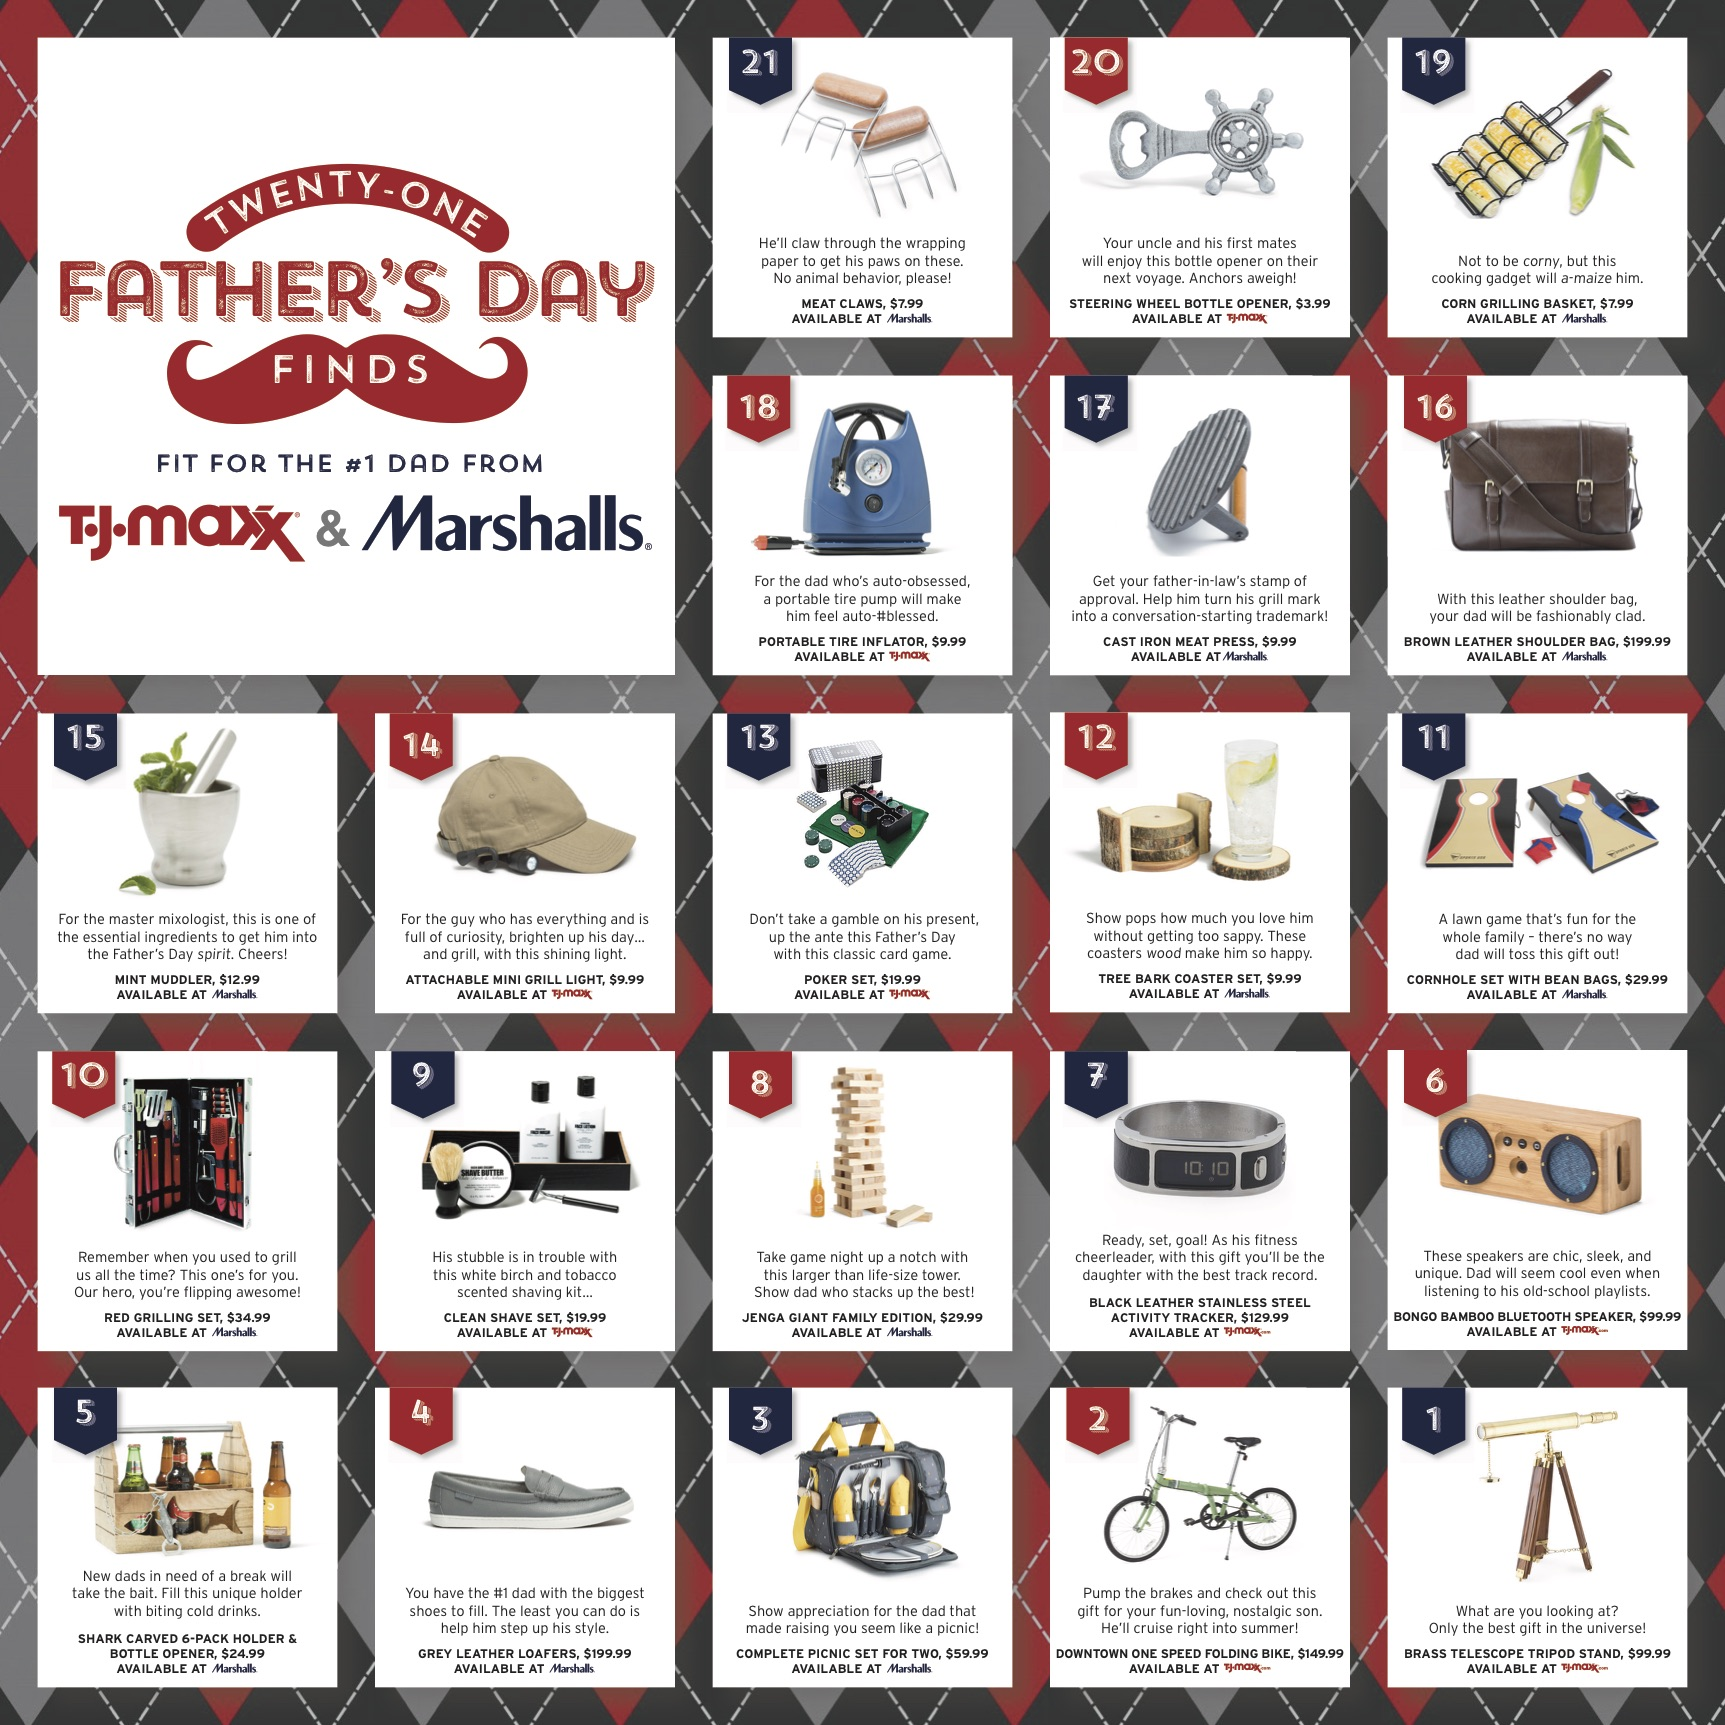 #FathersDay #Gifts #GiftGuide #TJMaxx #Marshalls #ad